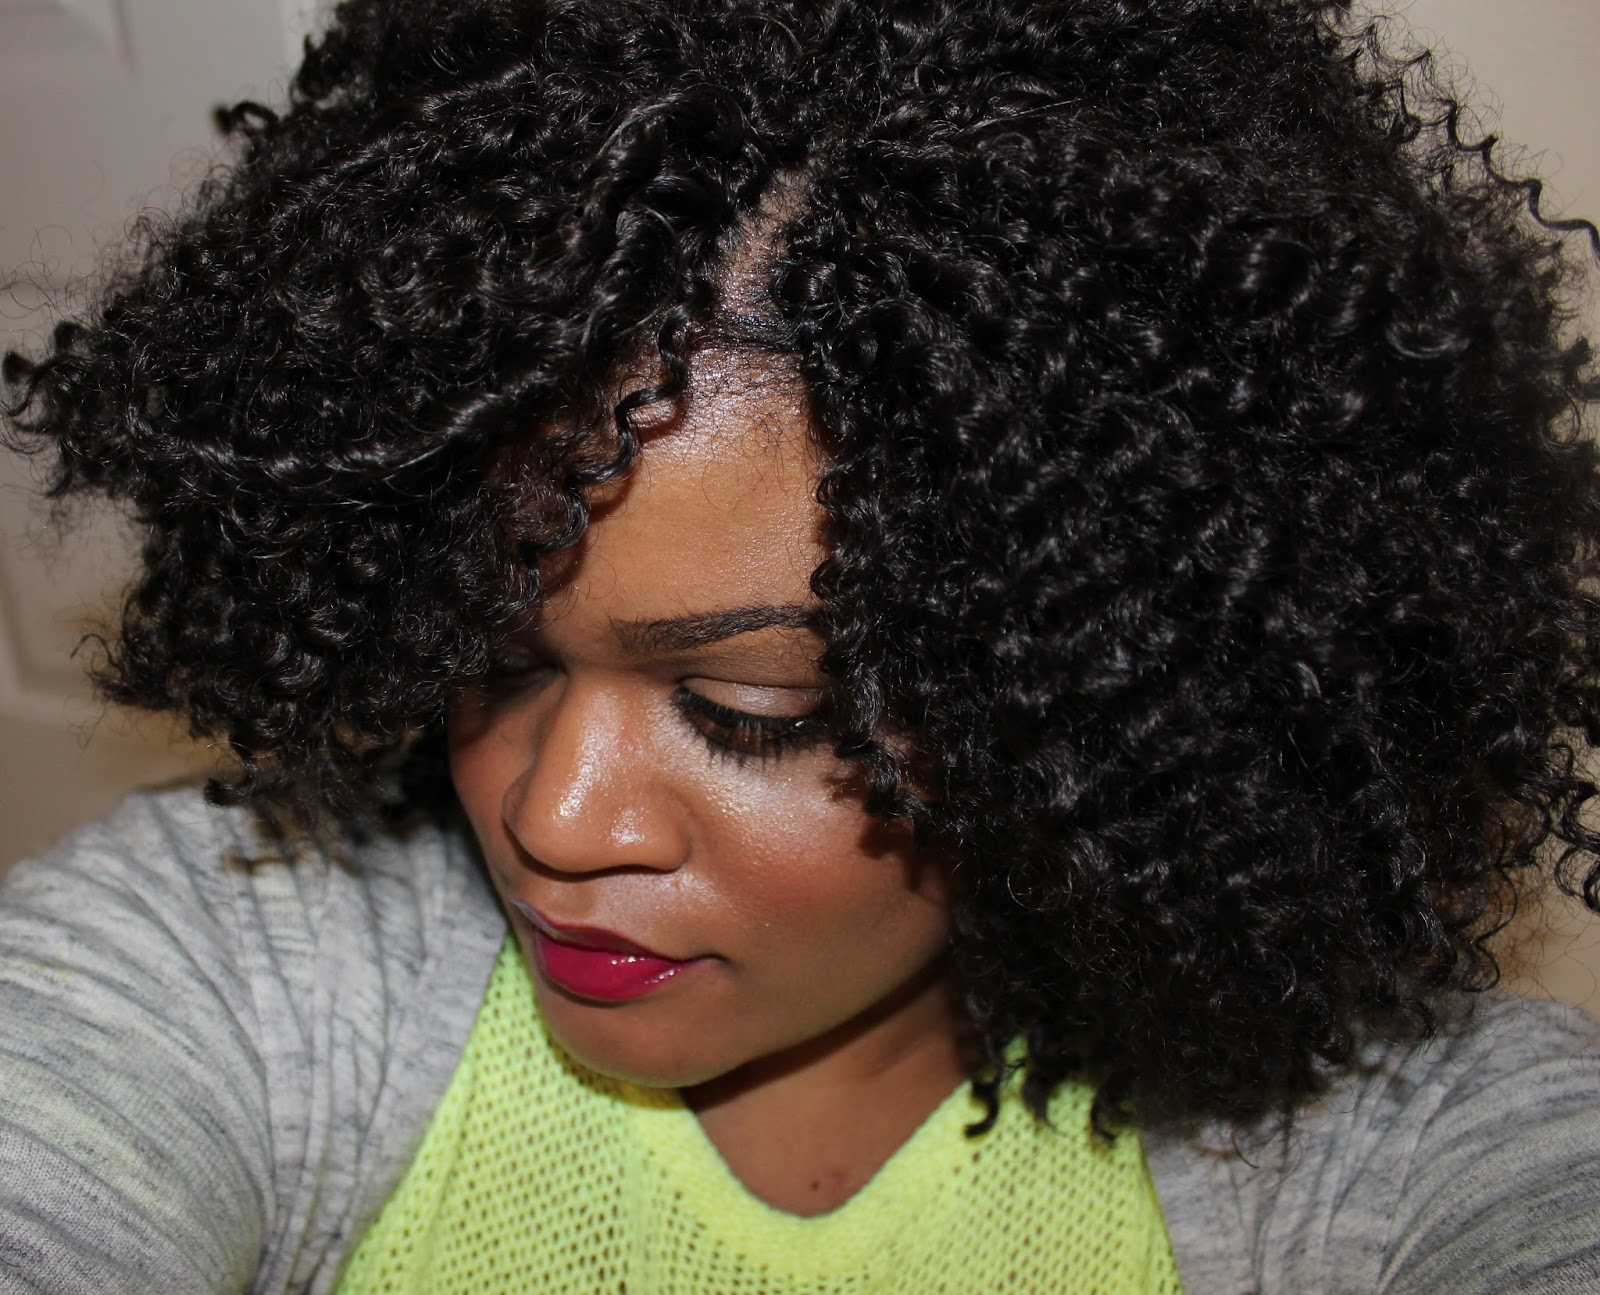 Crochet Hair Styles Braids : FabEllis: Natural Hair What Are Crochet Braids?